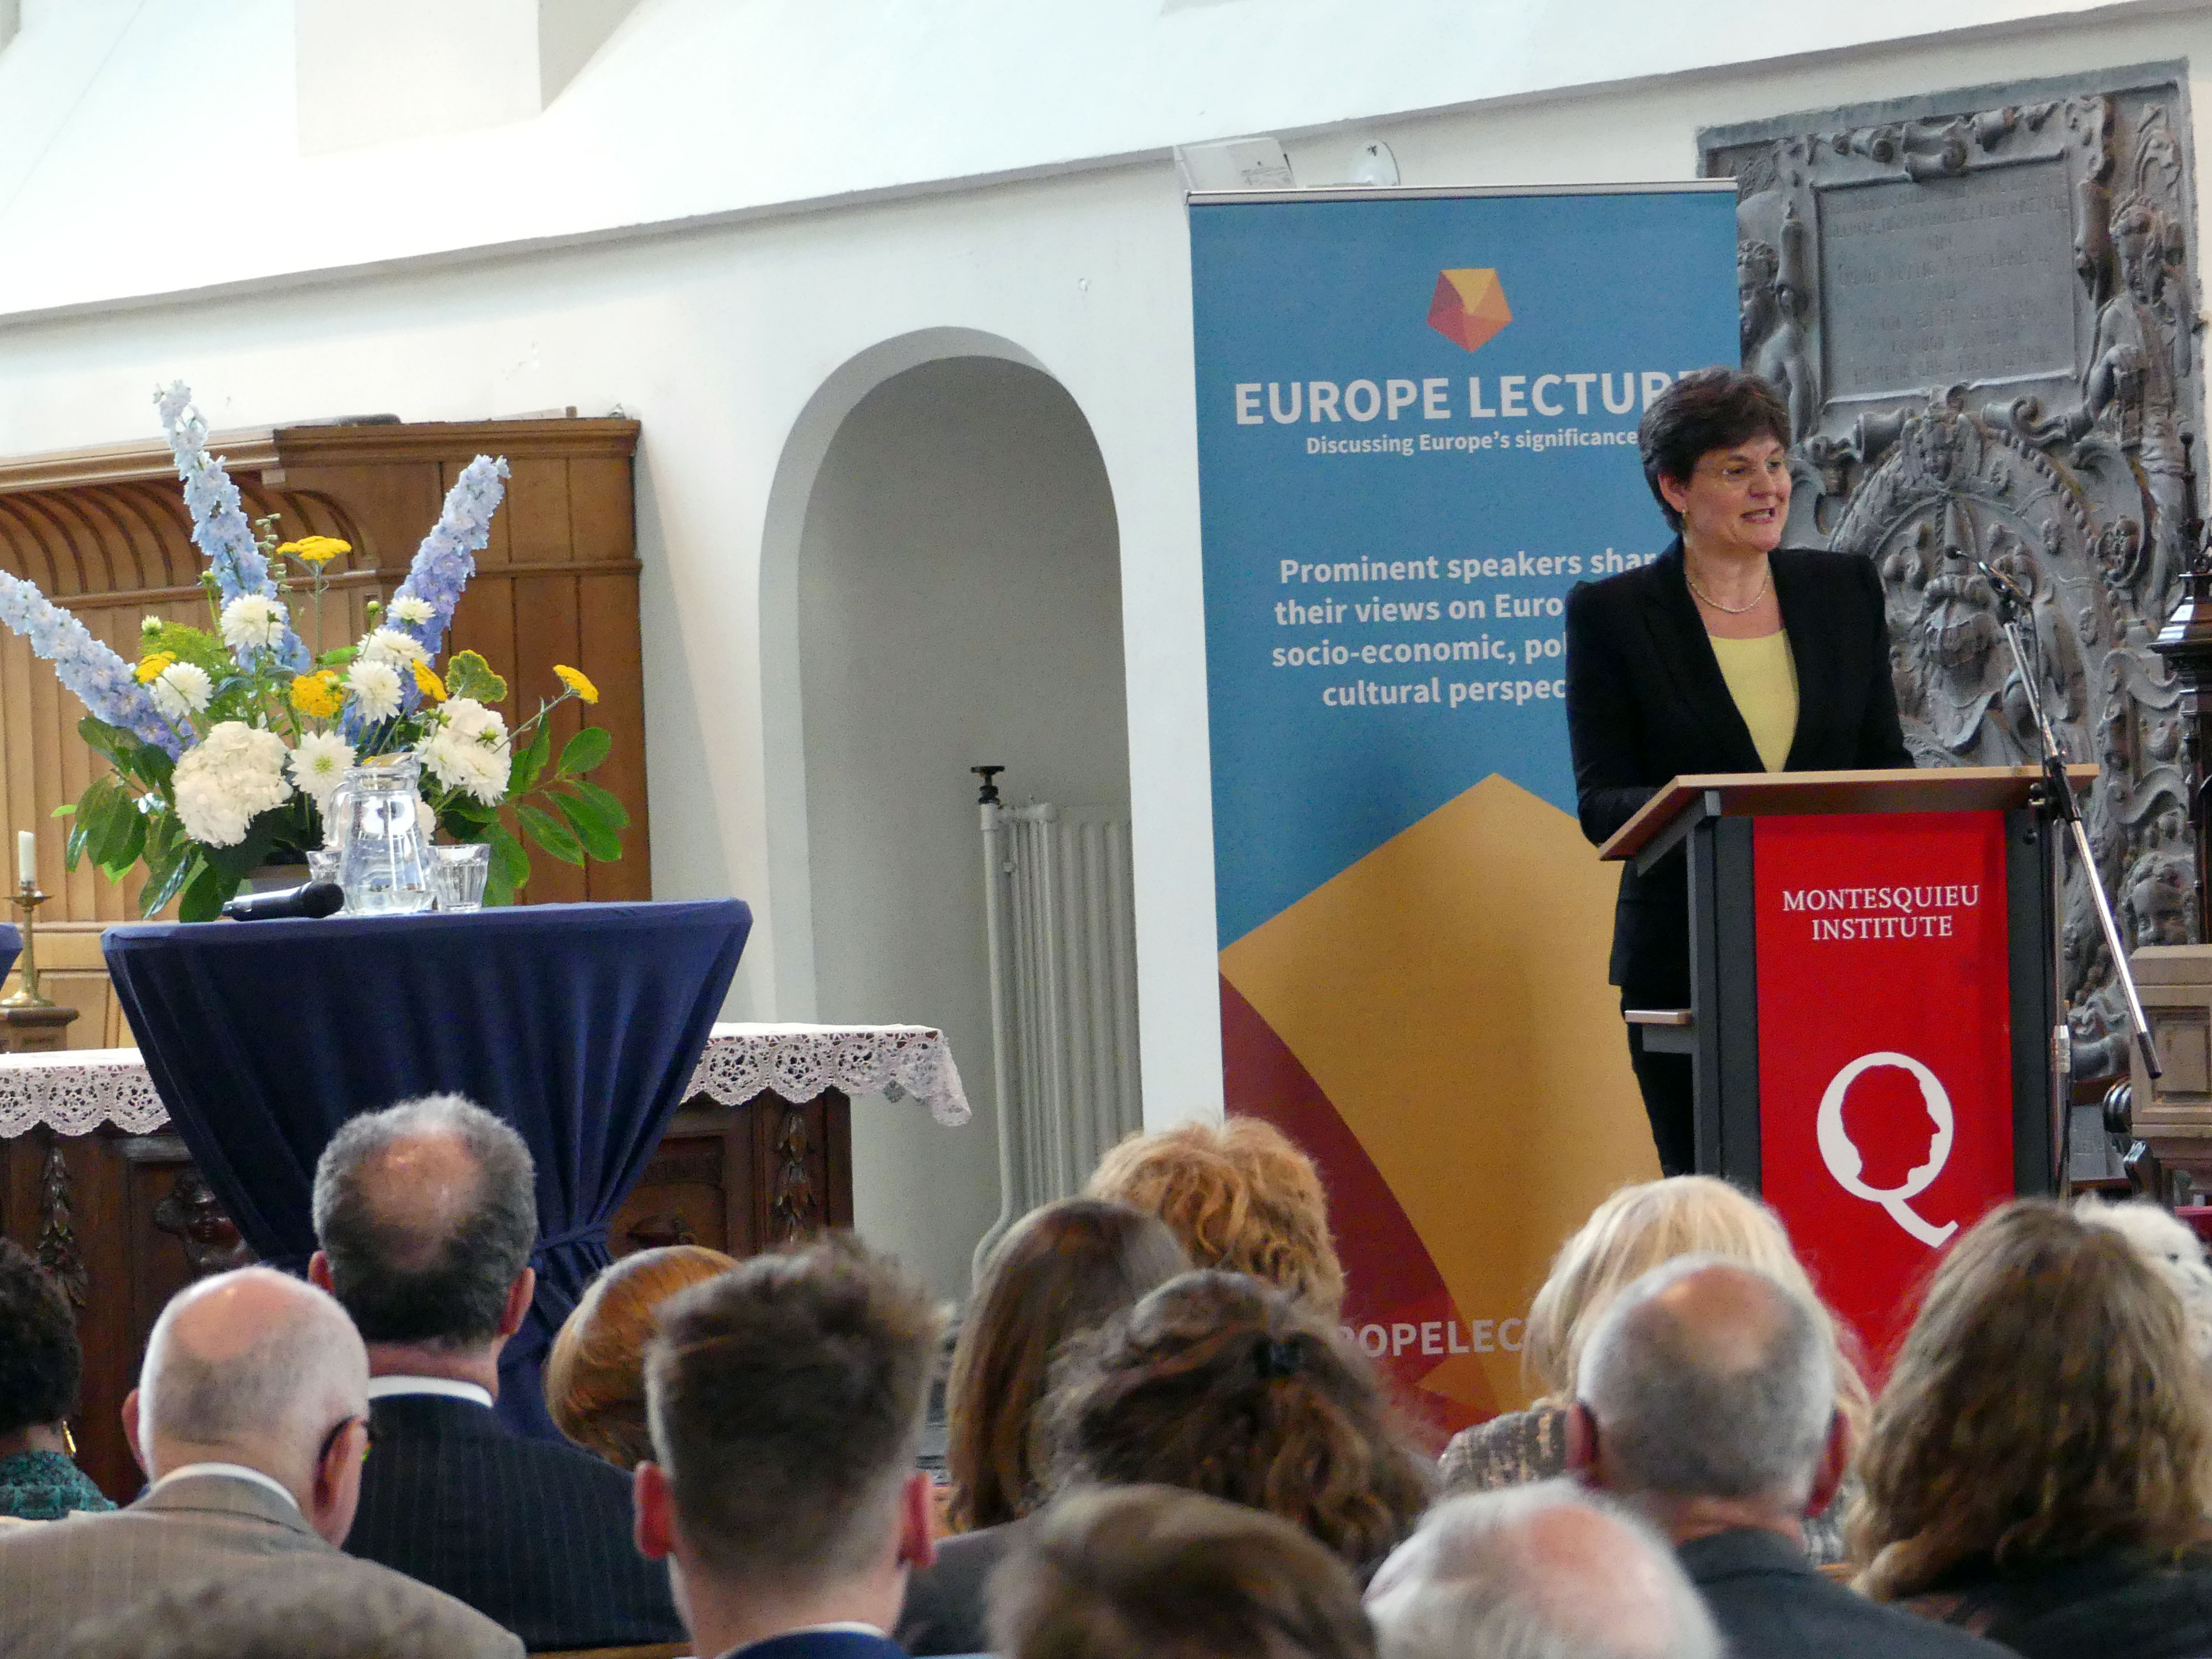 Europe Lecture June 13, 2016